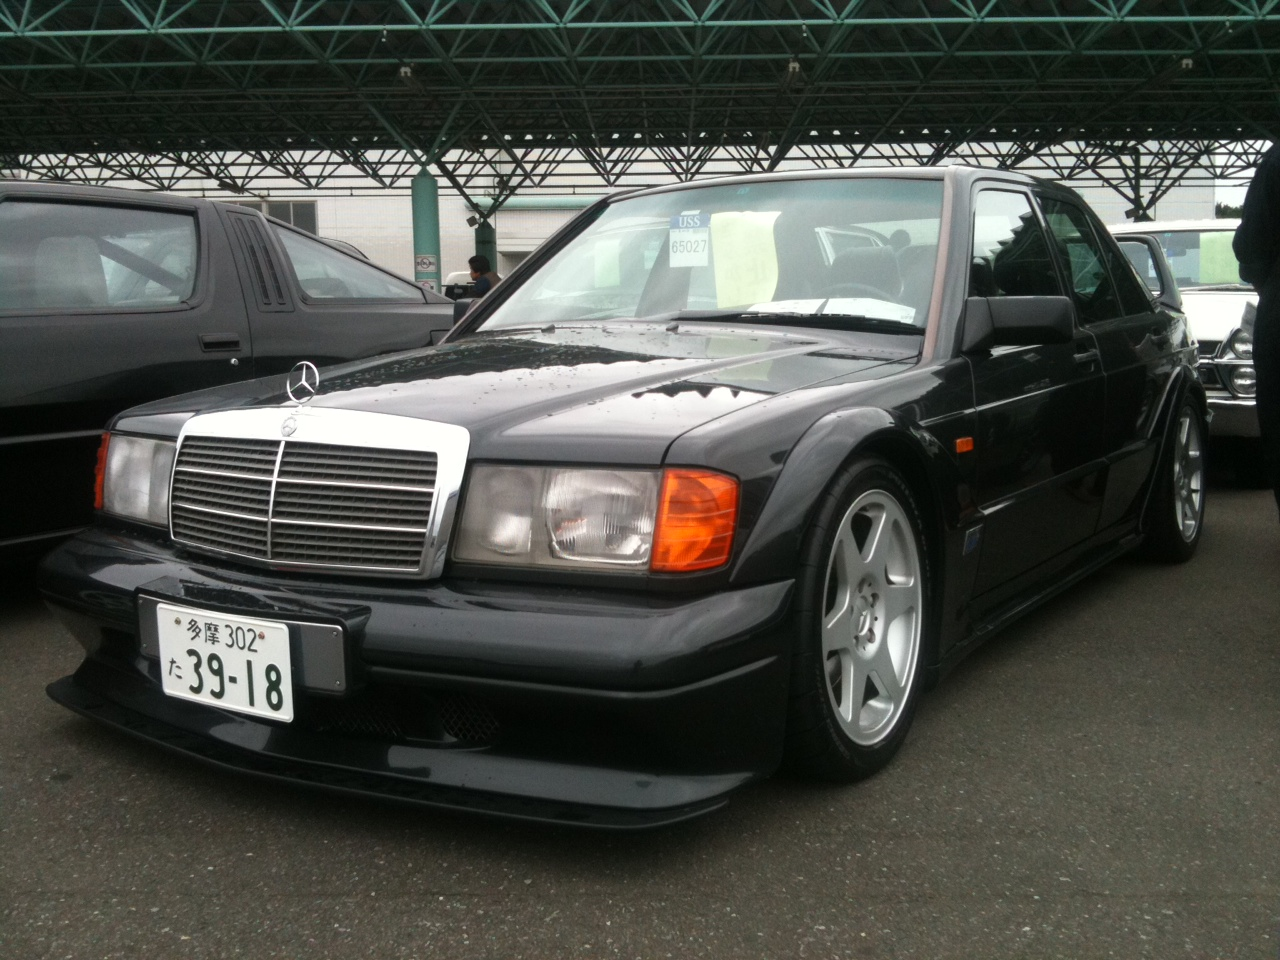 legendary cars mercedes benz 190e w201 2 5 16 evolution. Black Bedroom Furniture Sets. Home Design Ideas